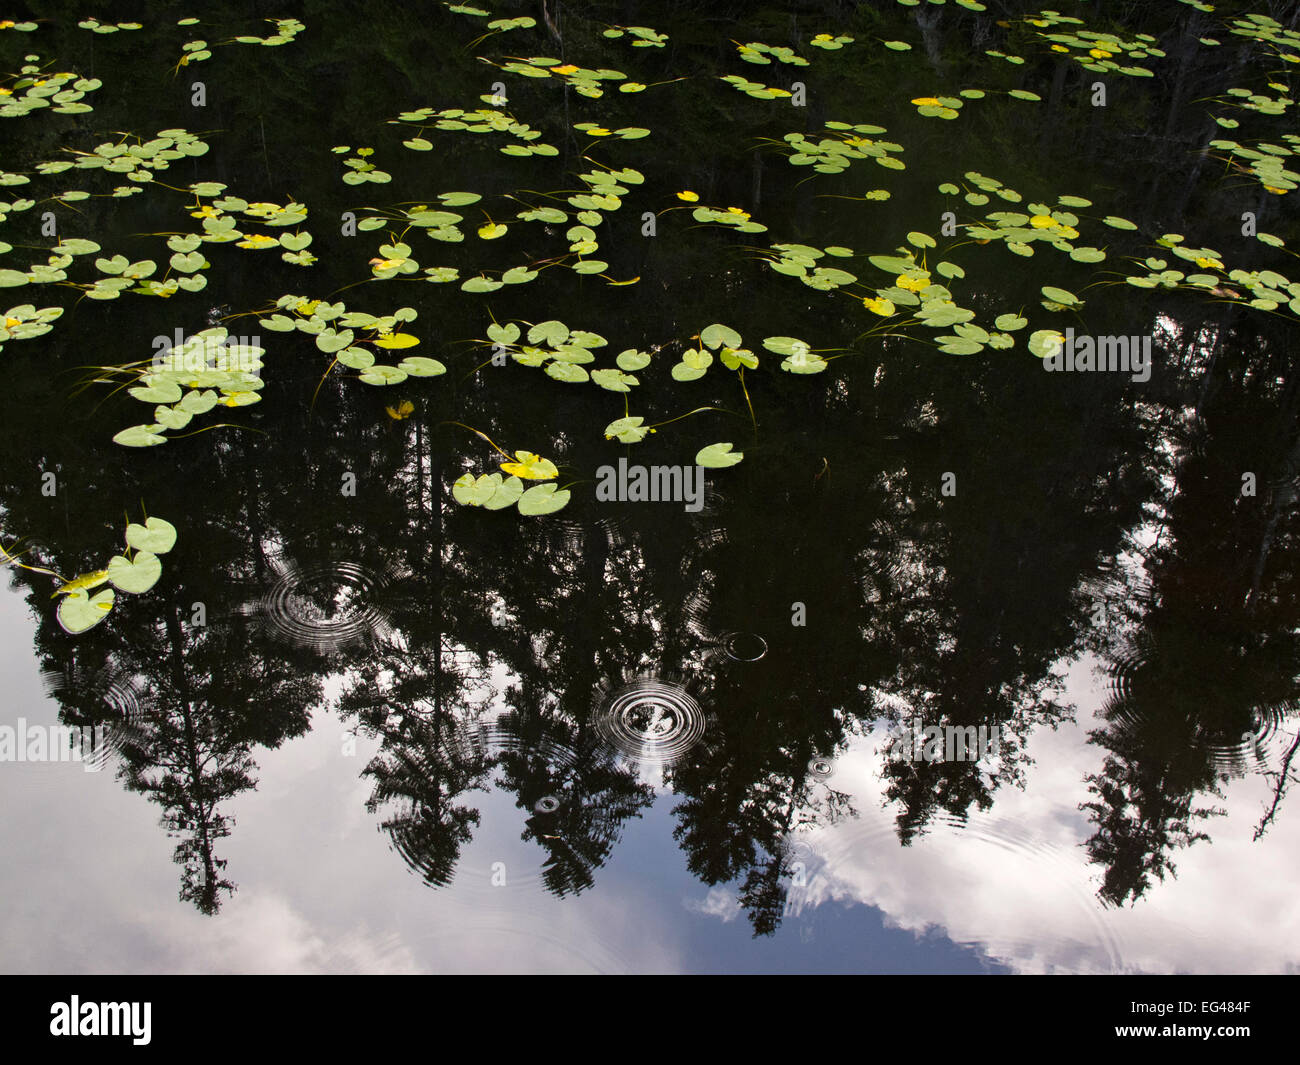 Lily pads (Nymphaceae) the reflections pine trees water reflections Tresticklan National Park Southwest Sweden September - Stock Image